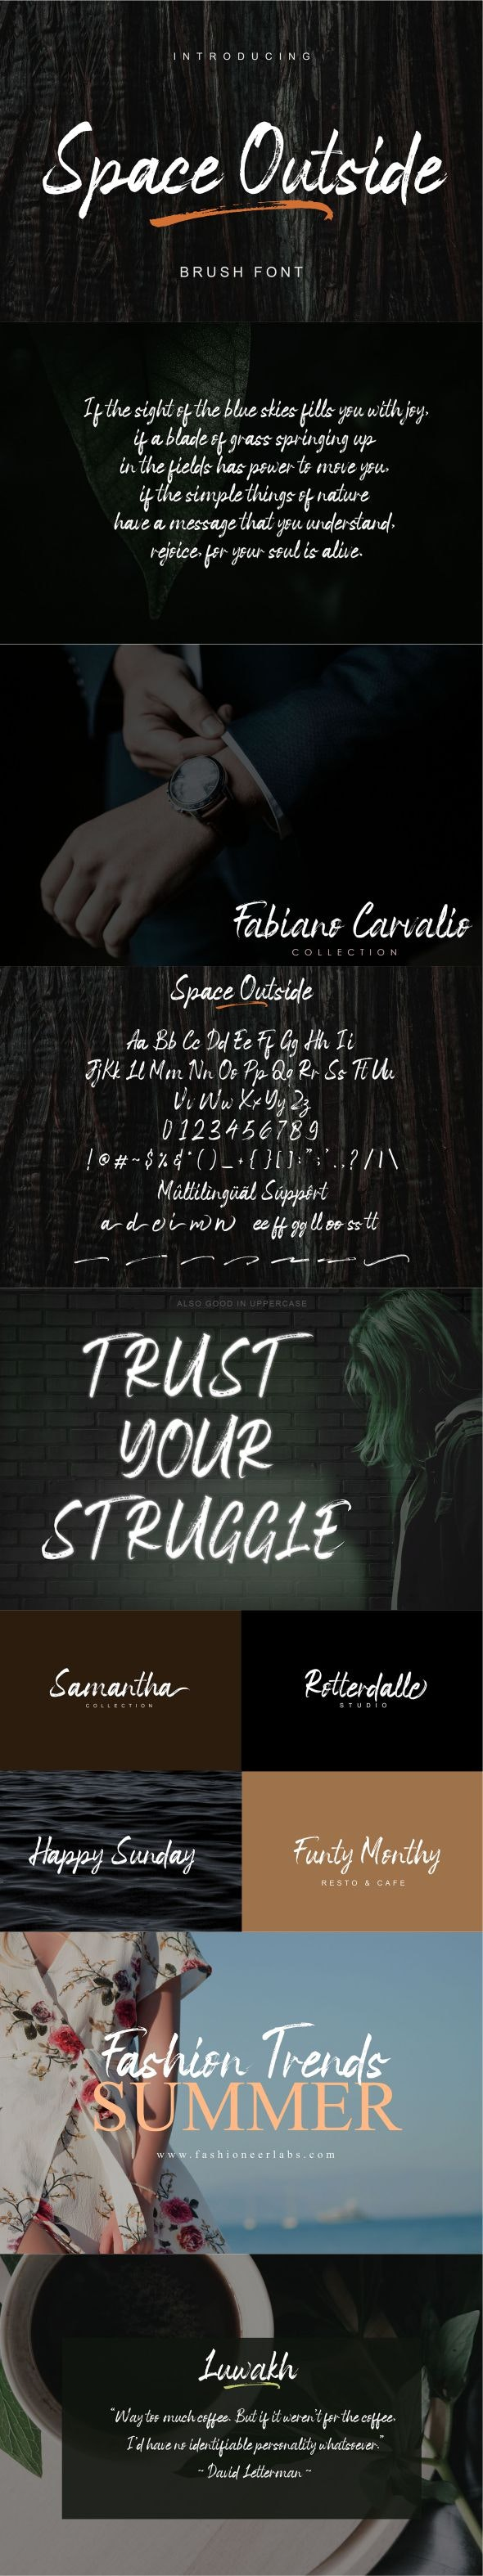 Space Outside Brush Font - Hand-writing Script